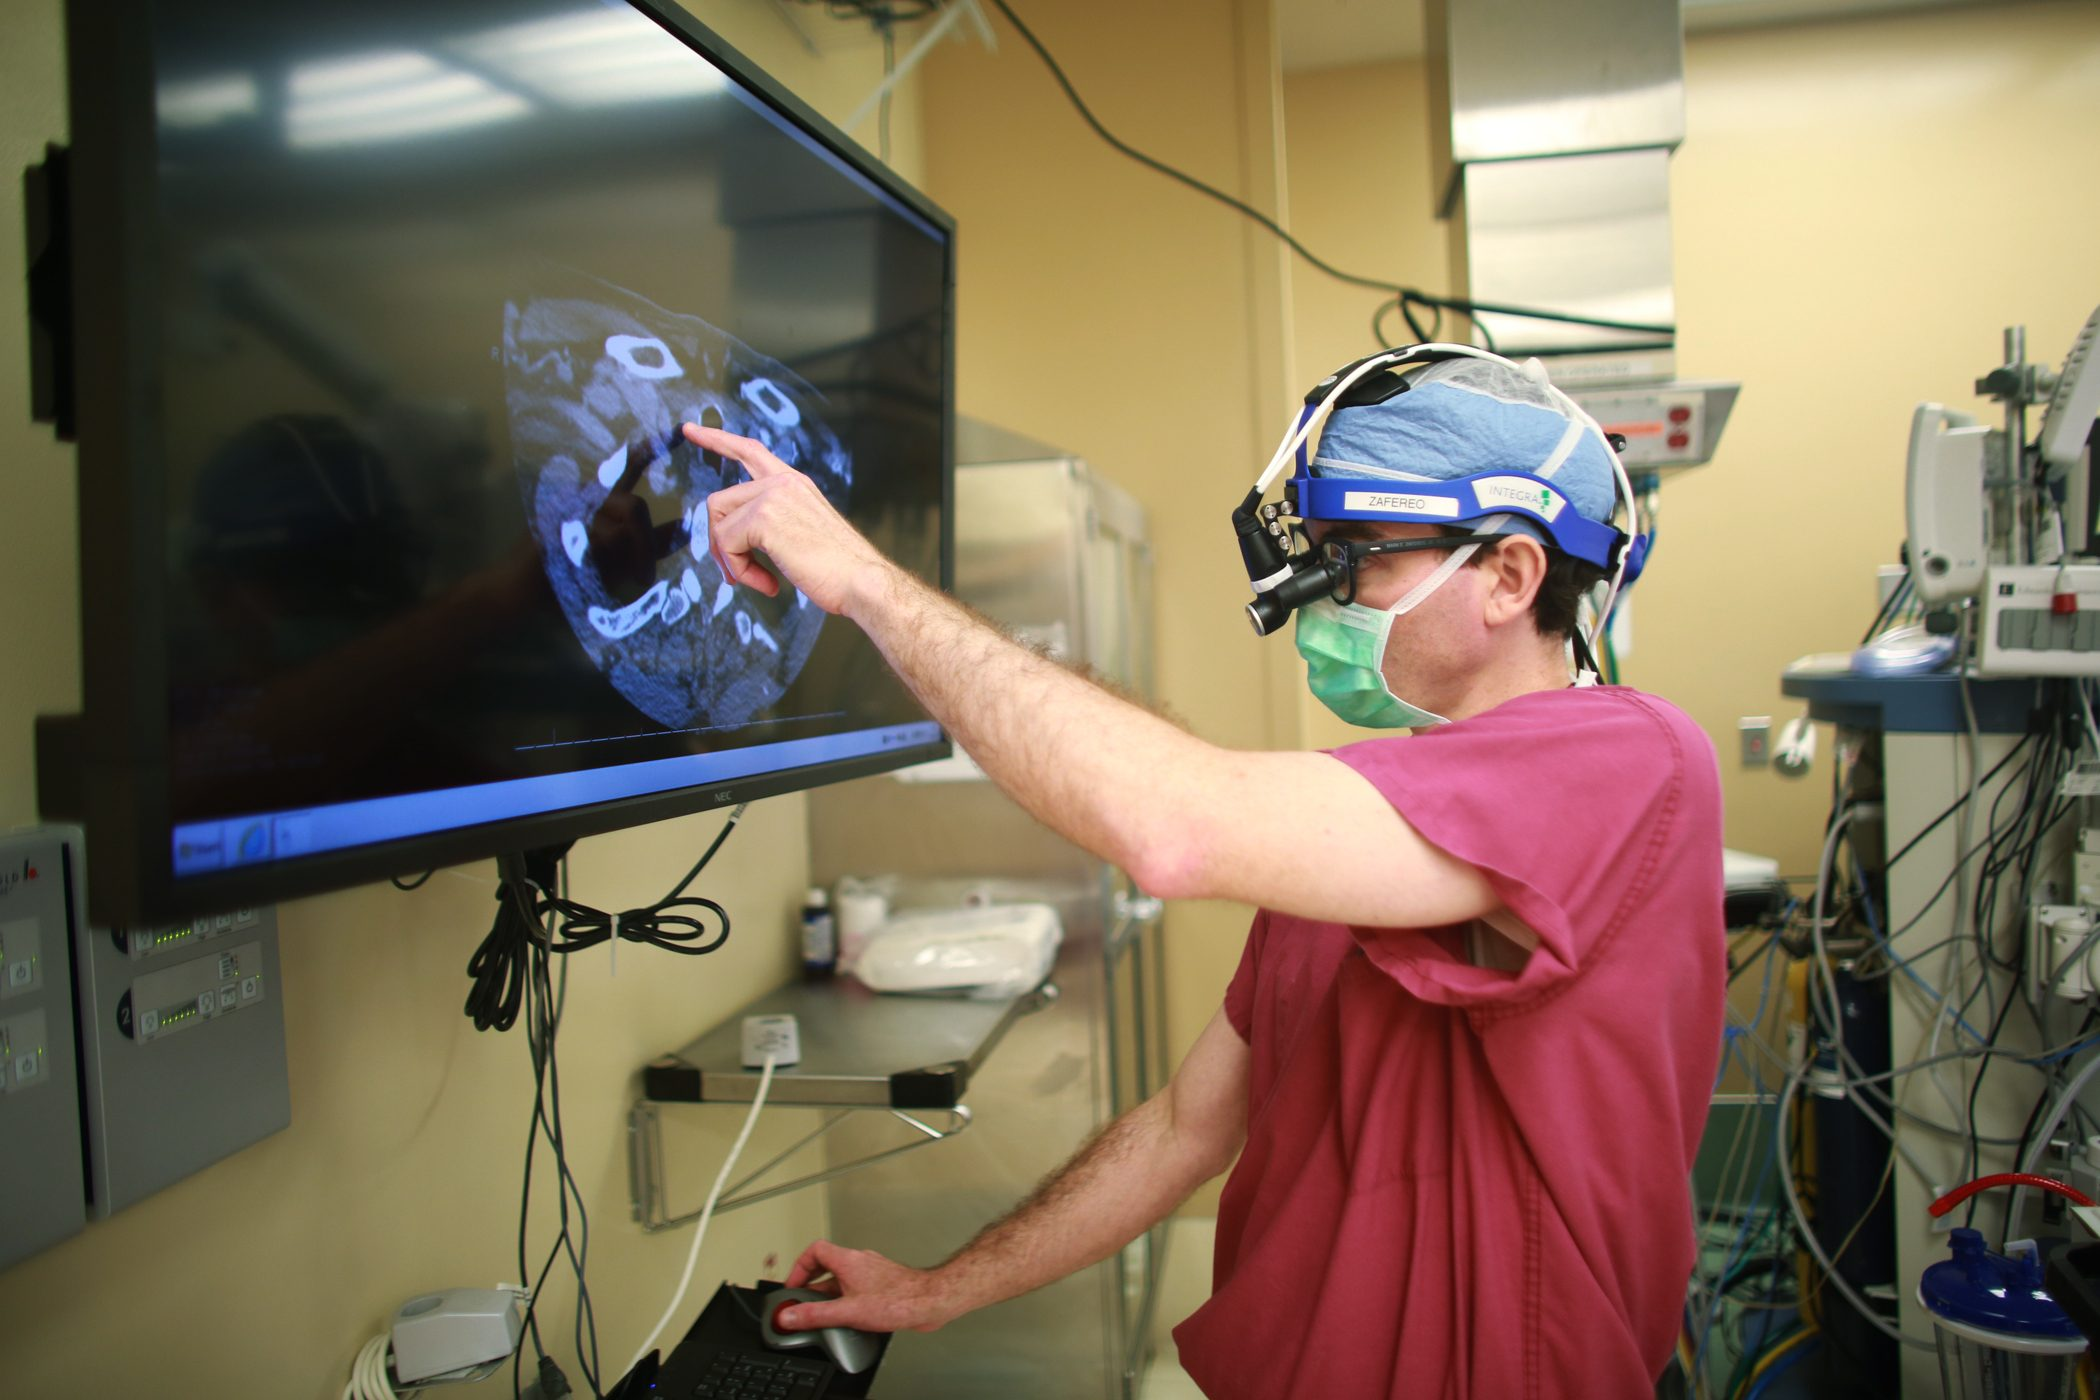 Mark Zafereo, M.D., looking at a computer monitor during surgery